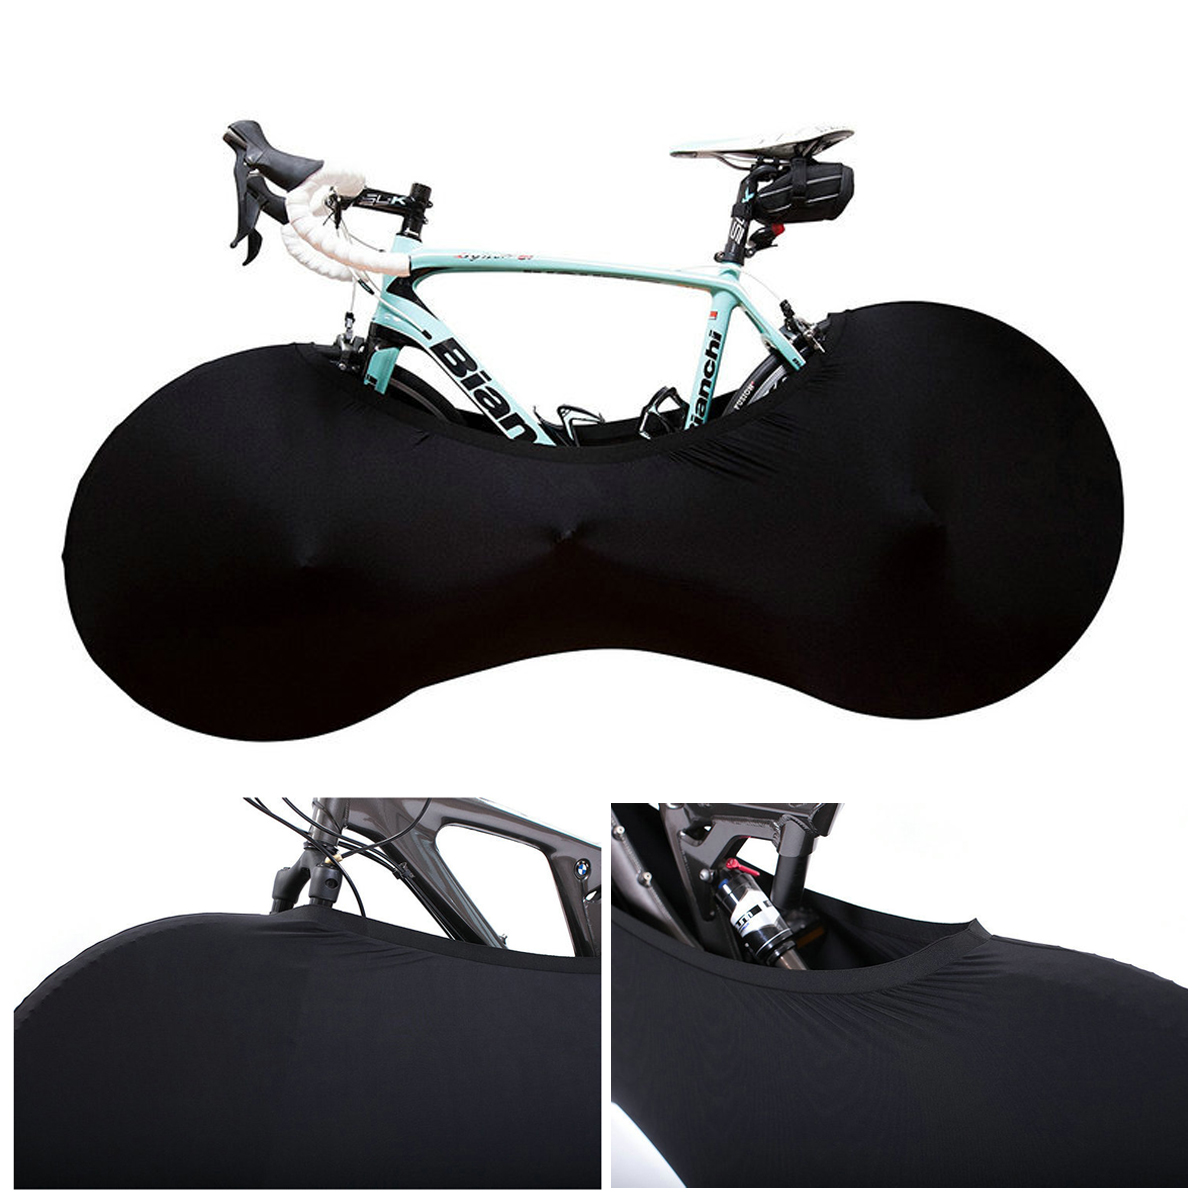 Bike Cover Anti-dust Rainproof Bicycle Wheel Chains Cover Case Storage Protect Bag Indoor Outdoor For 139-170cm